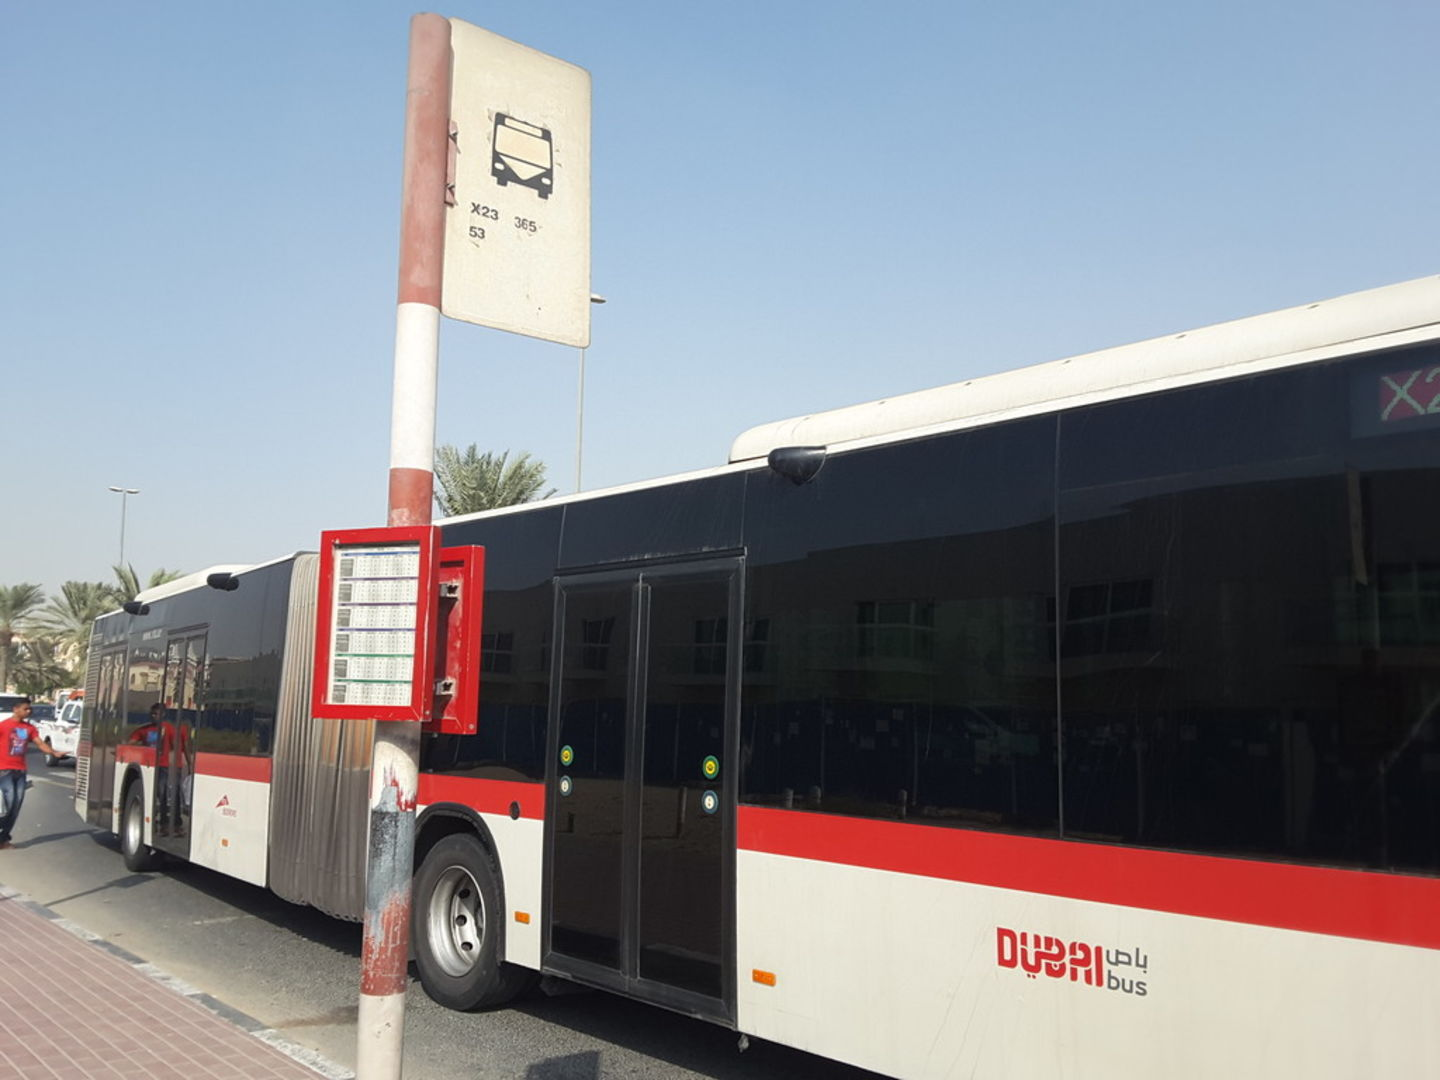 HiDubai-business-international-city-greece-1-bus-stop-transport-vehicle-services-public-transport-international-city-warsan-1-dubai-2